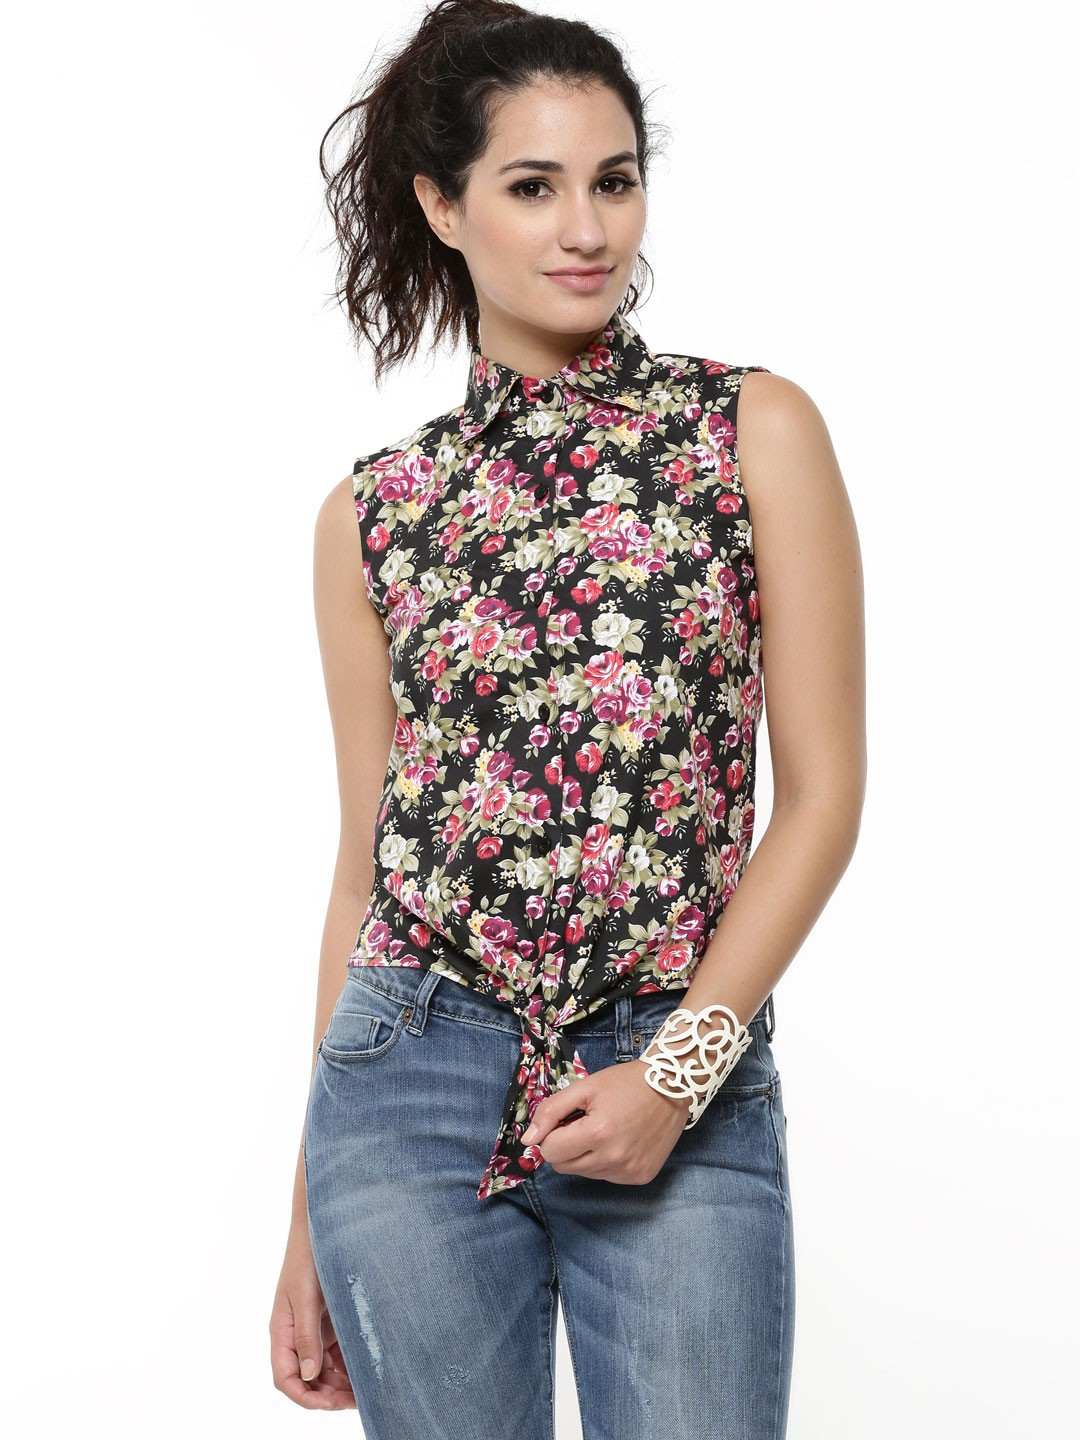 Buy Faballey Knotted Shirt In Floral Print For Women